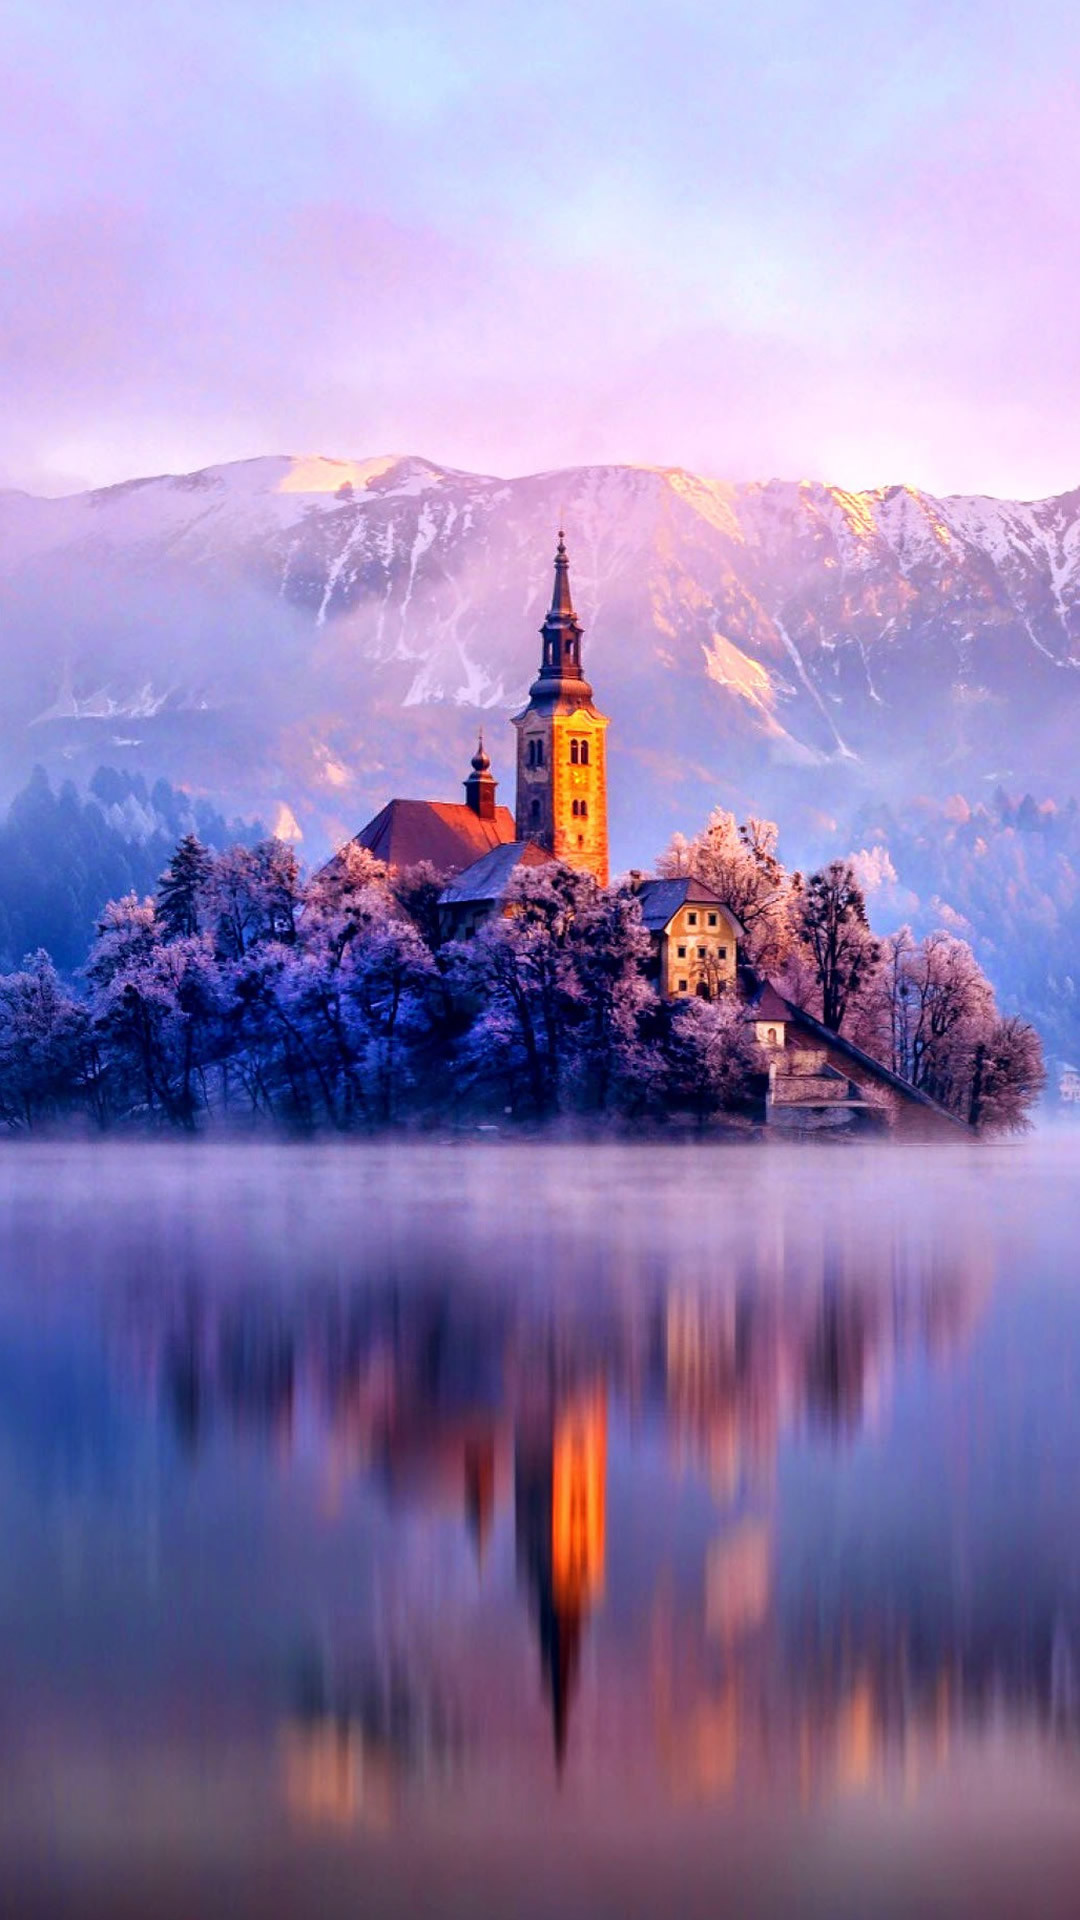 … lake monastery fortress winter iphone 8 wallpaper download …